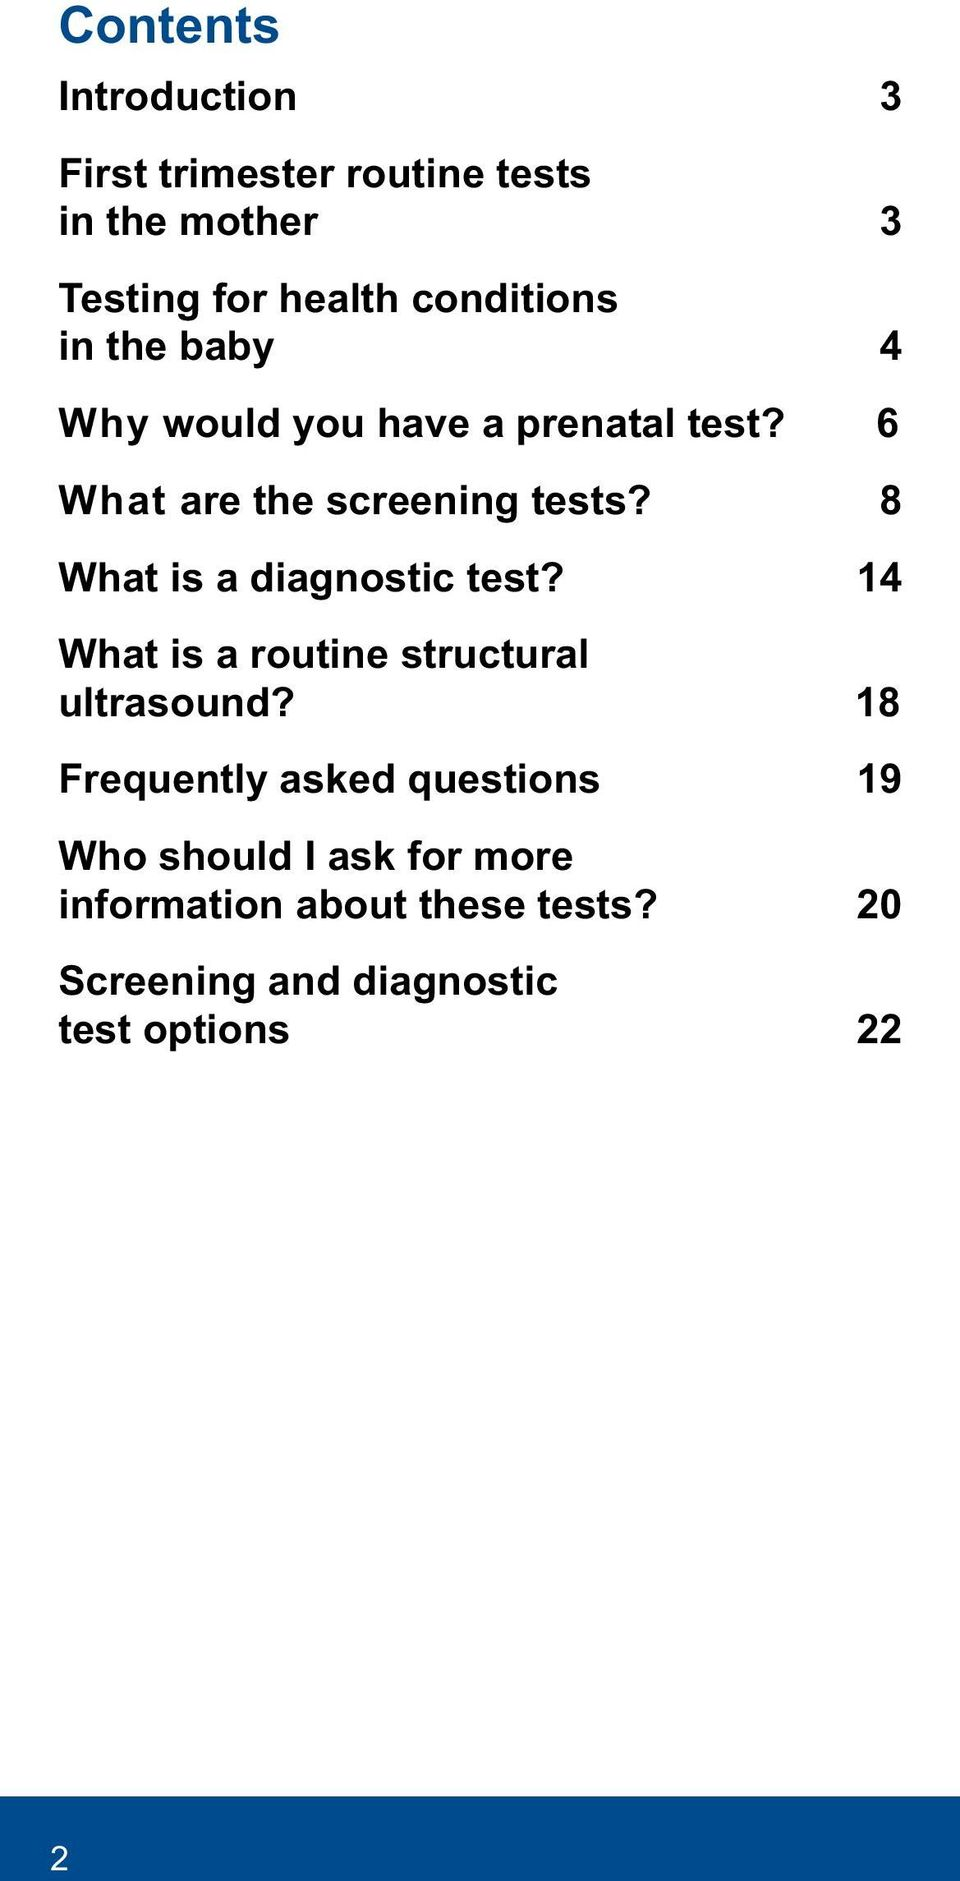 8 What is a diagnostic test? 14 What is a routine structural ultrasound?